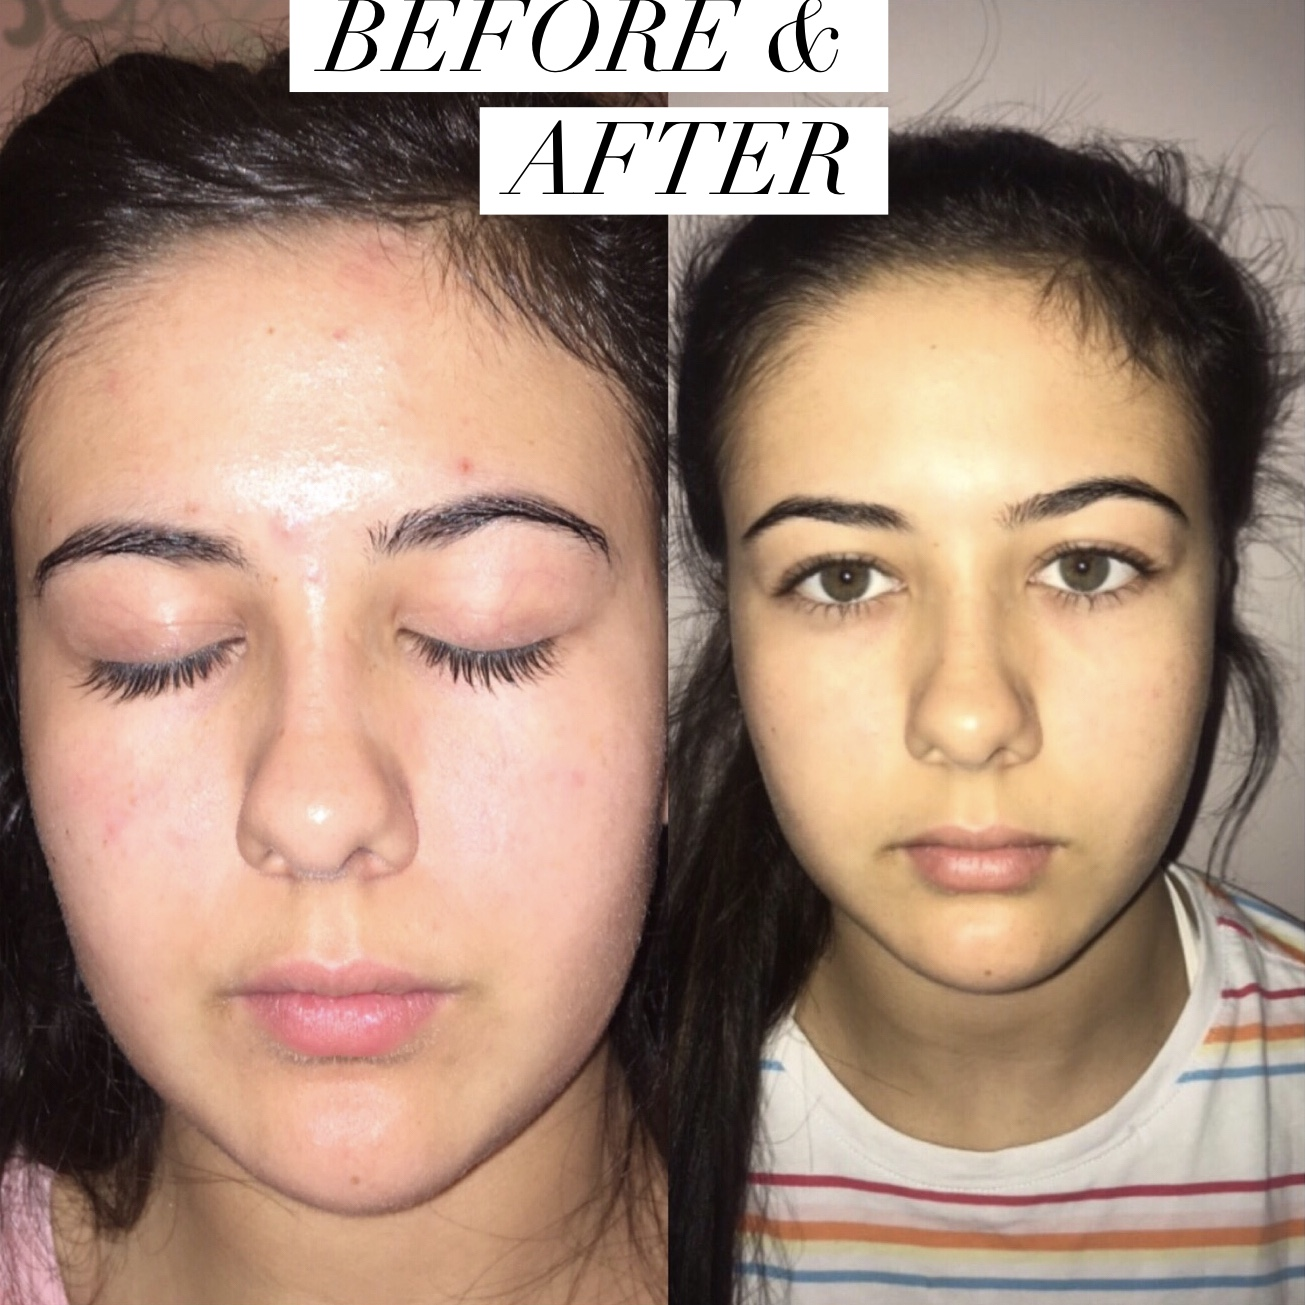 14 student - She had very sensitive skin, and we had to focus on calming and healing her skin. It took 6-7 months in the before and after using the full routine day and night. The products helped reduce redness, and detoxify her skin. Toward the end of her skin journey she only needed to use the MIRACLE WATERS Face Wash, CLEARING Face Cream, CALMING Facial Spritz, and THE ULTIMATE DETOX Face Mask (2 times a week)'I never knew what to do when I started to get acne, it was a bit shocking as it came up all of a sudden. I really like the products, and am happy my skin is now clear and calm'